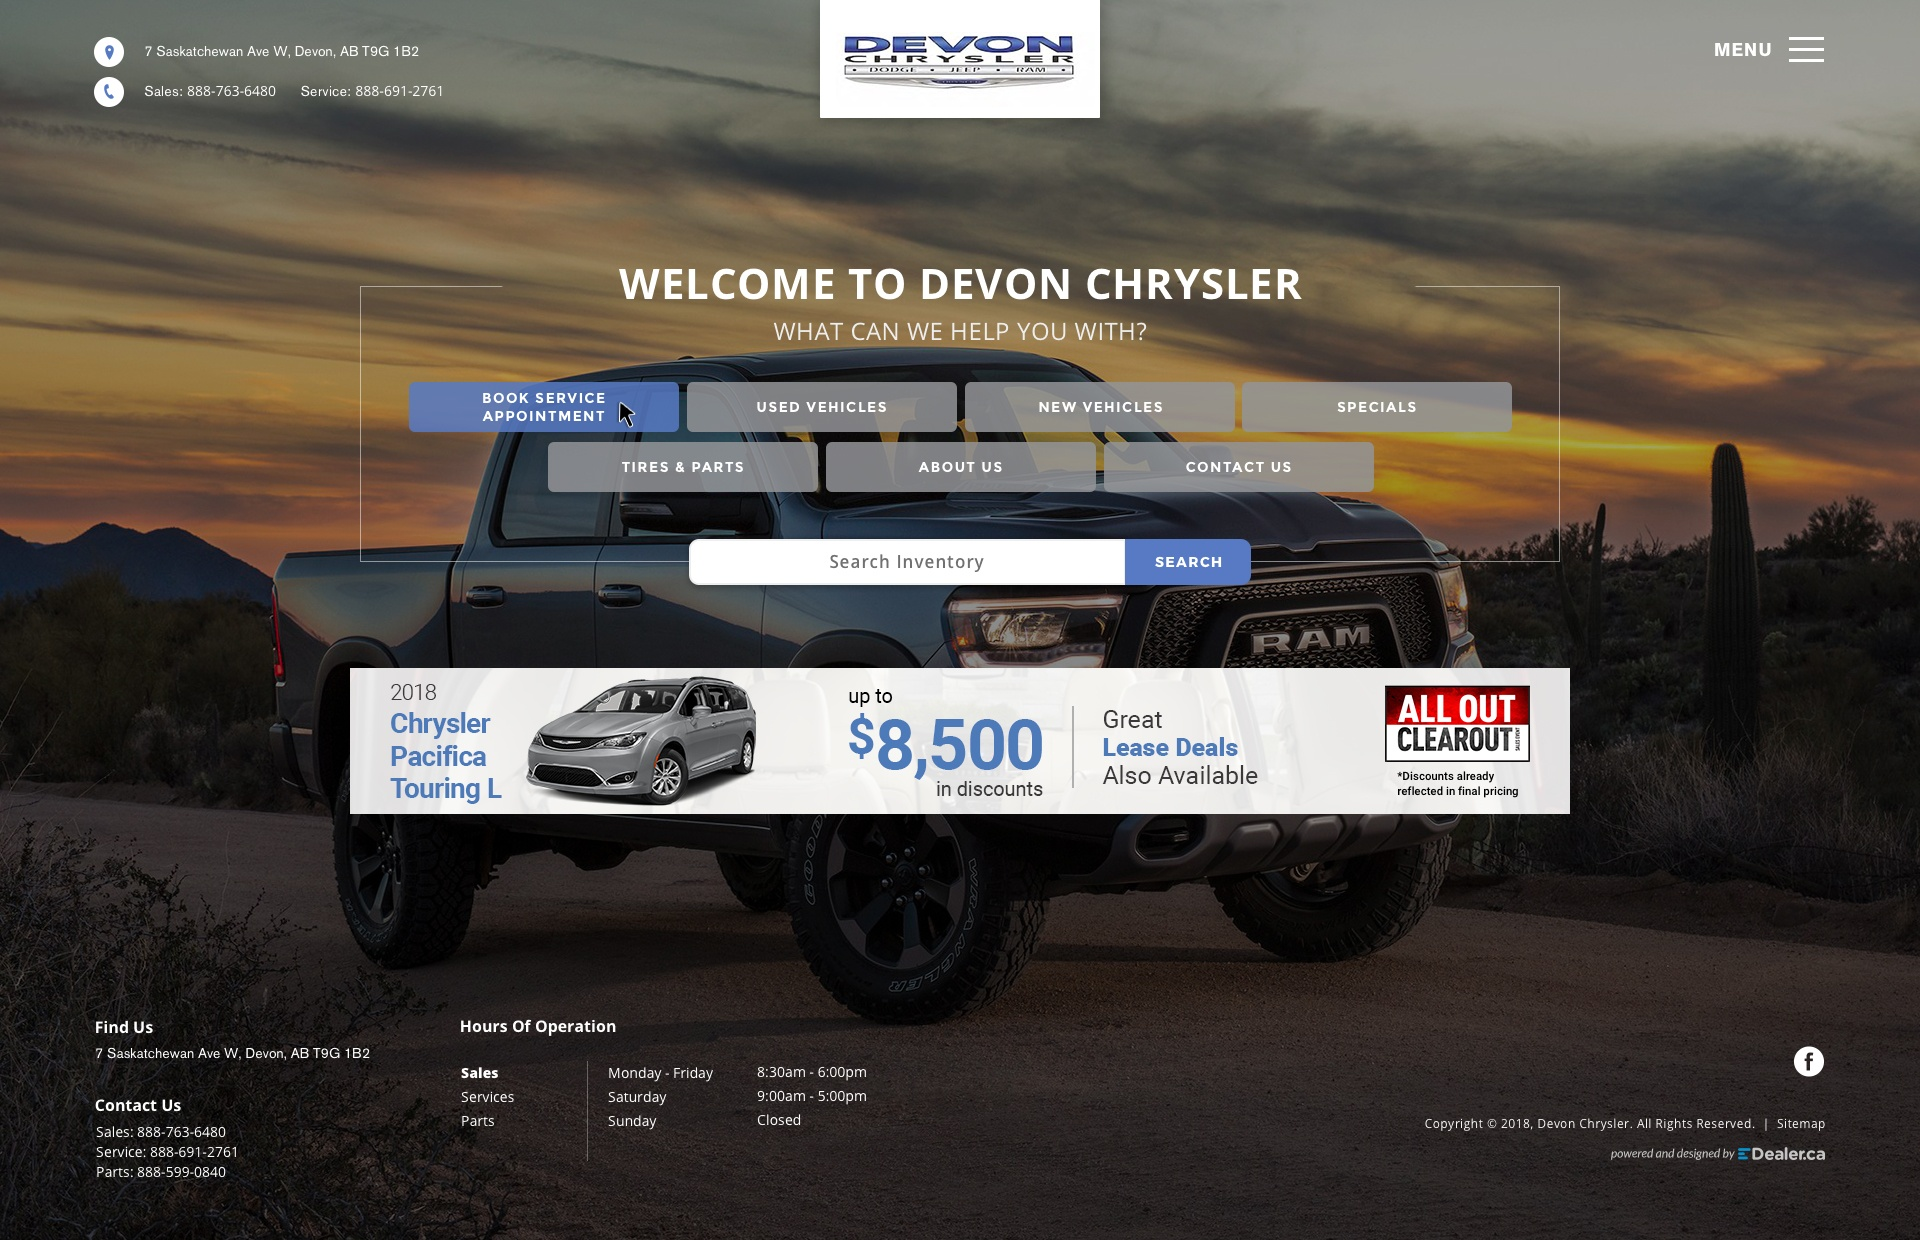 Devon Chrysler